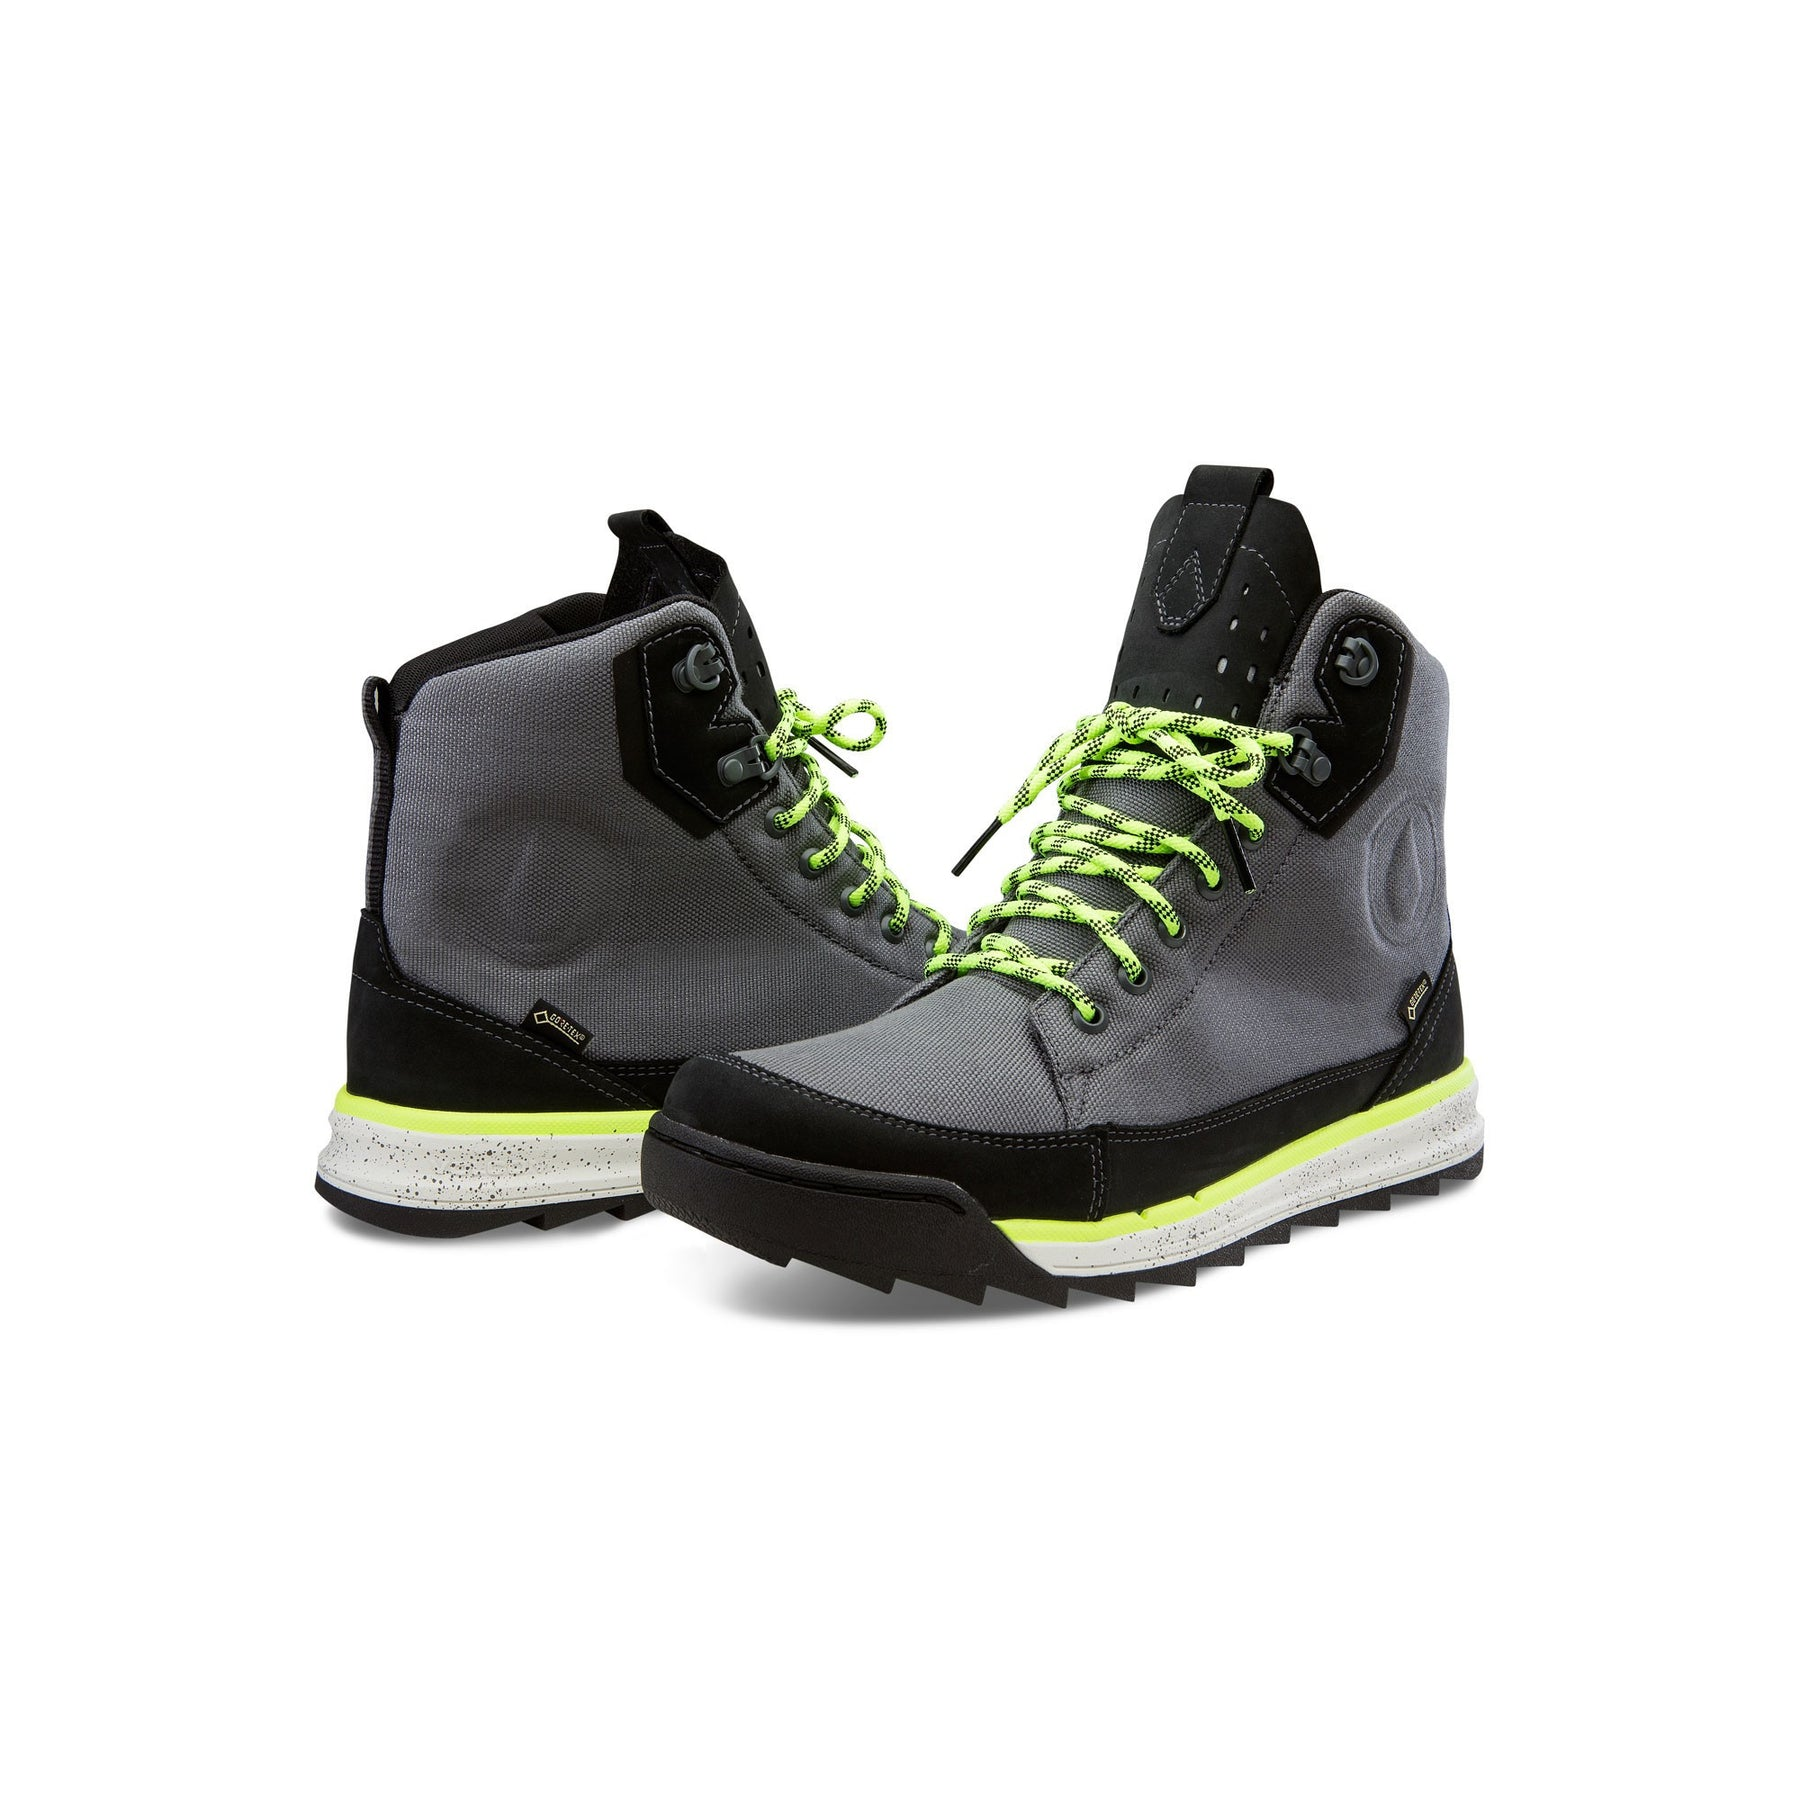 Buy Volcom Men's Hiking Boots at 88 Gear